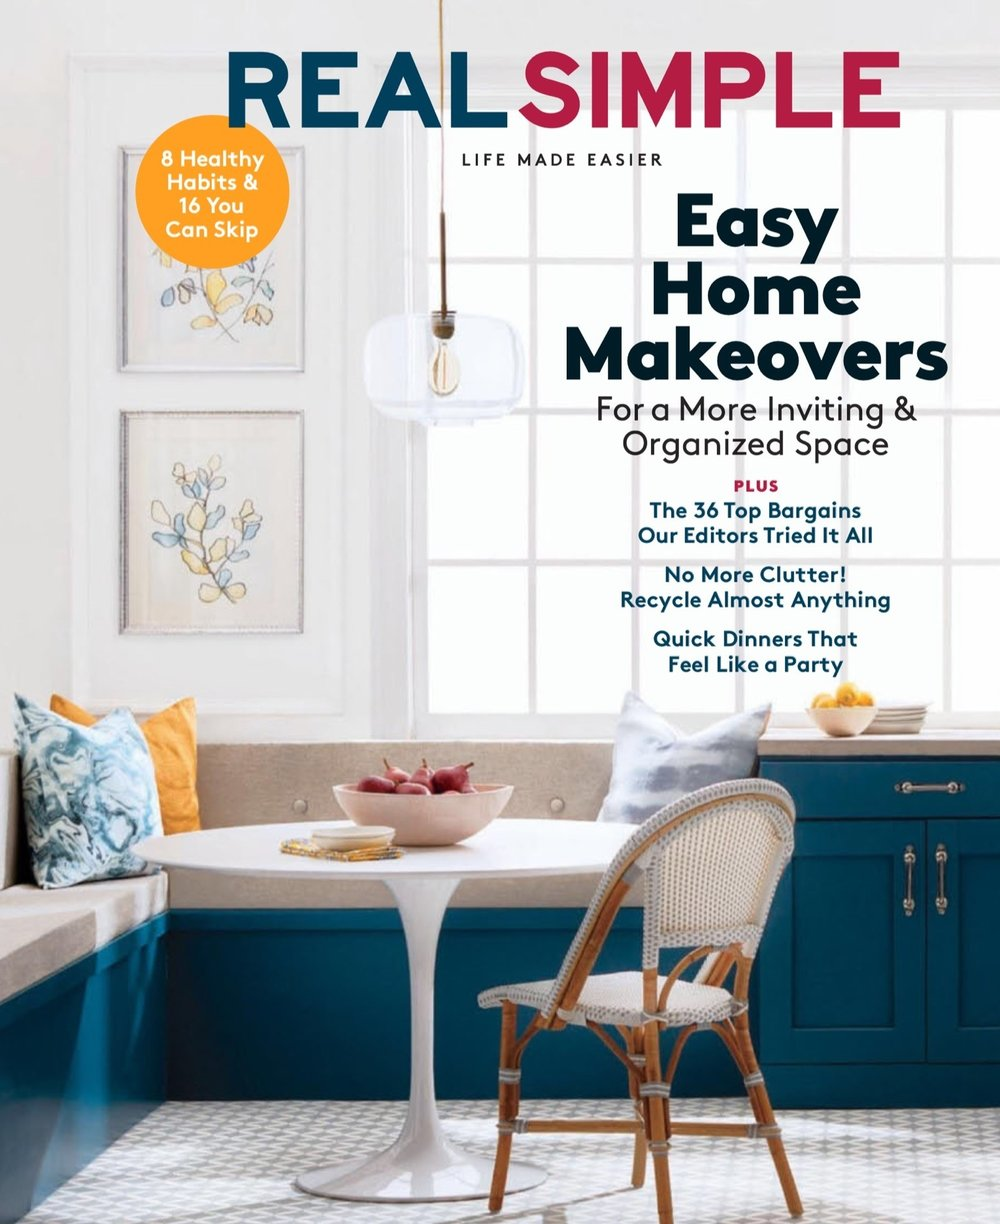 Real Simple Magazine Cover.jpg